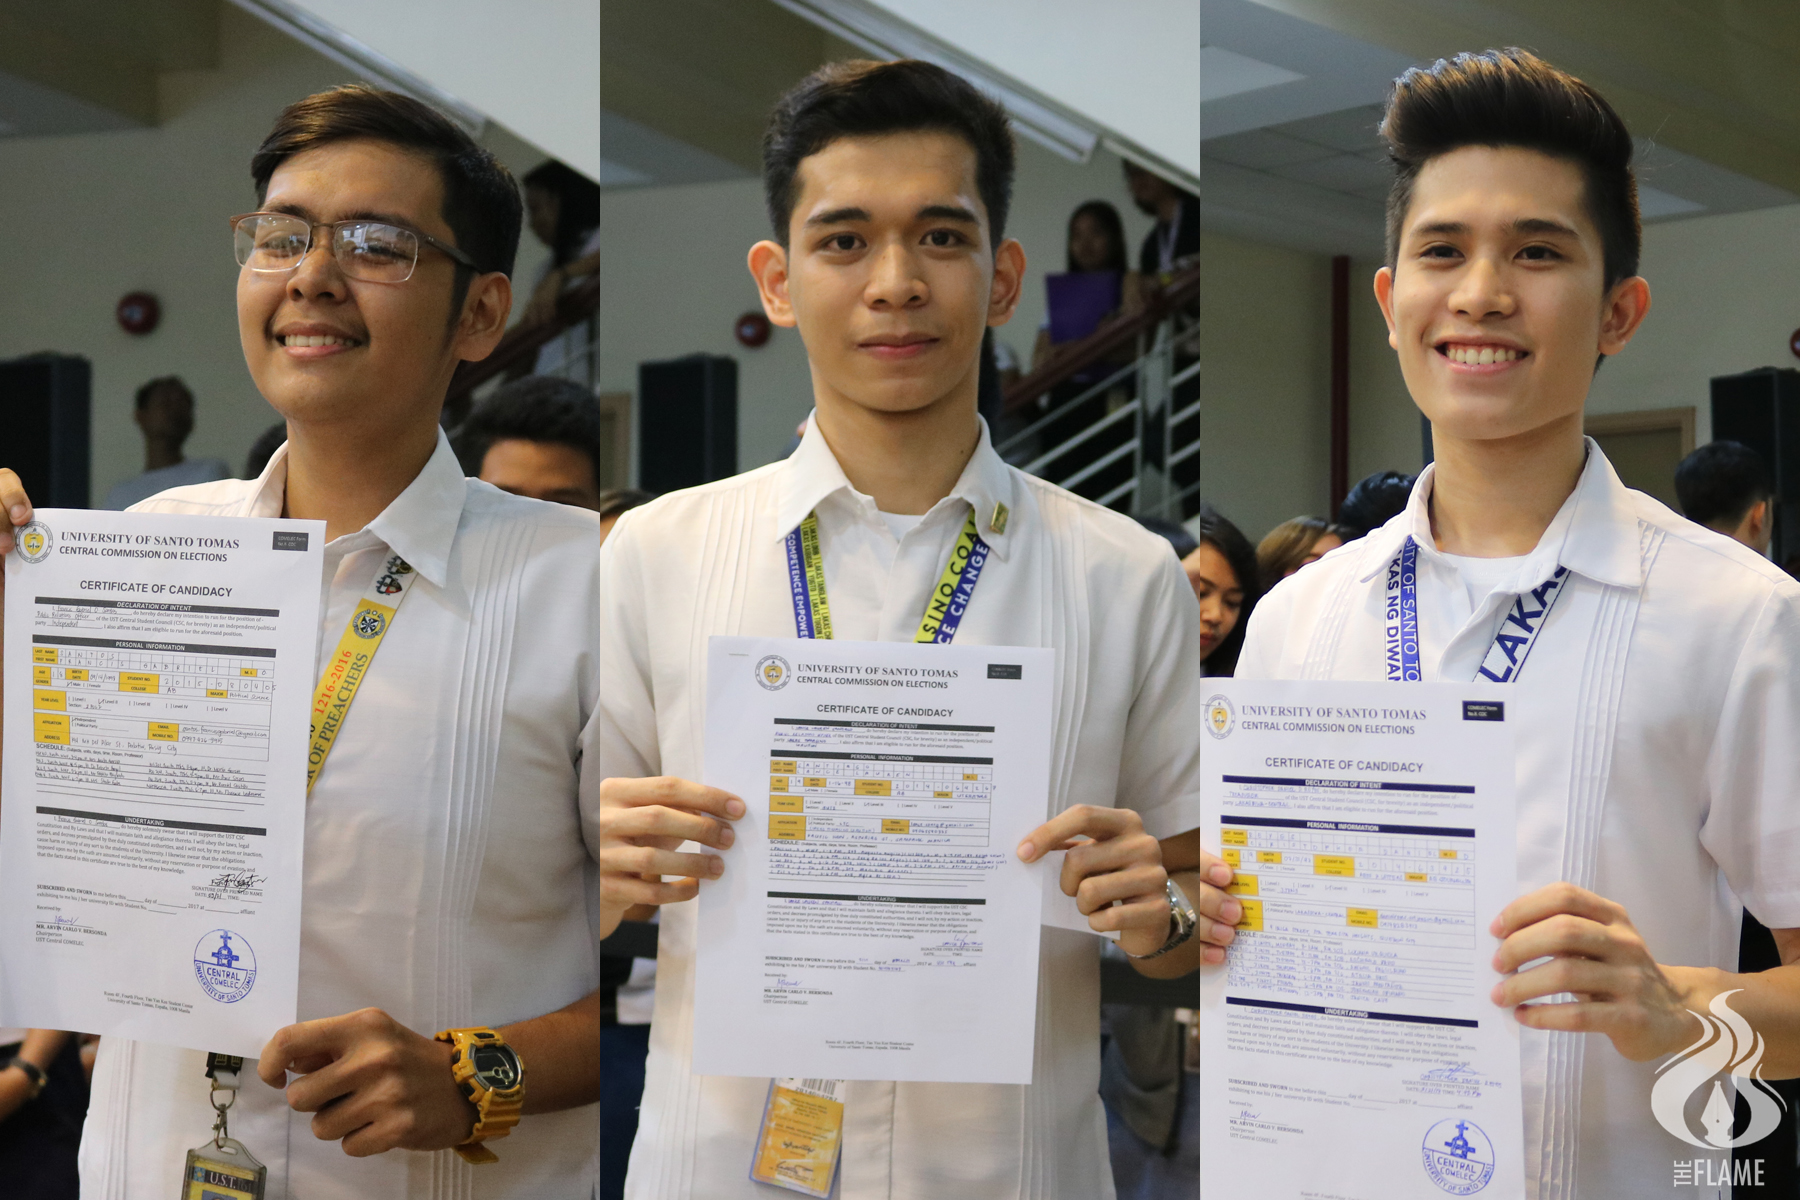 3 Artlets compete for CSC posts